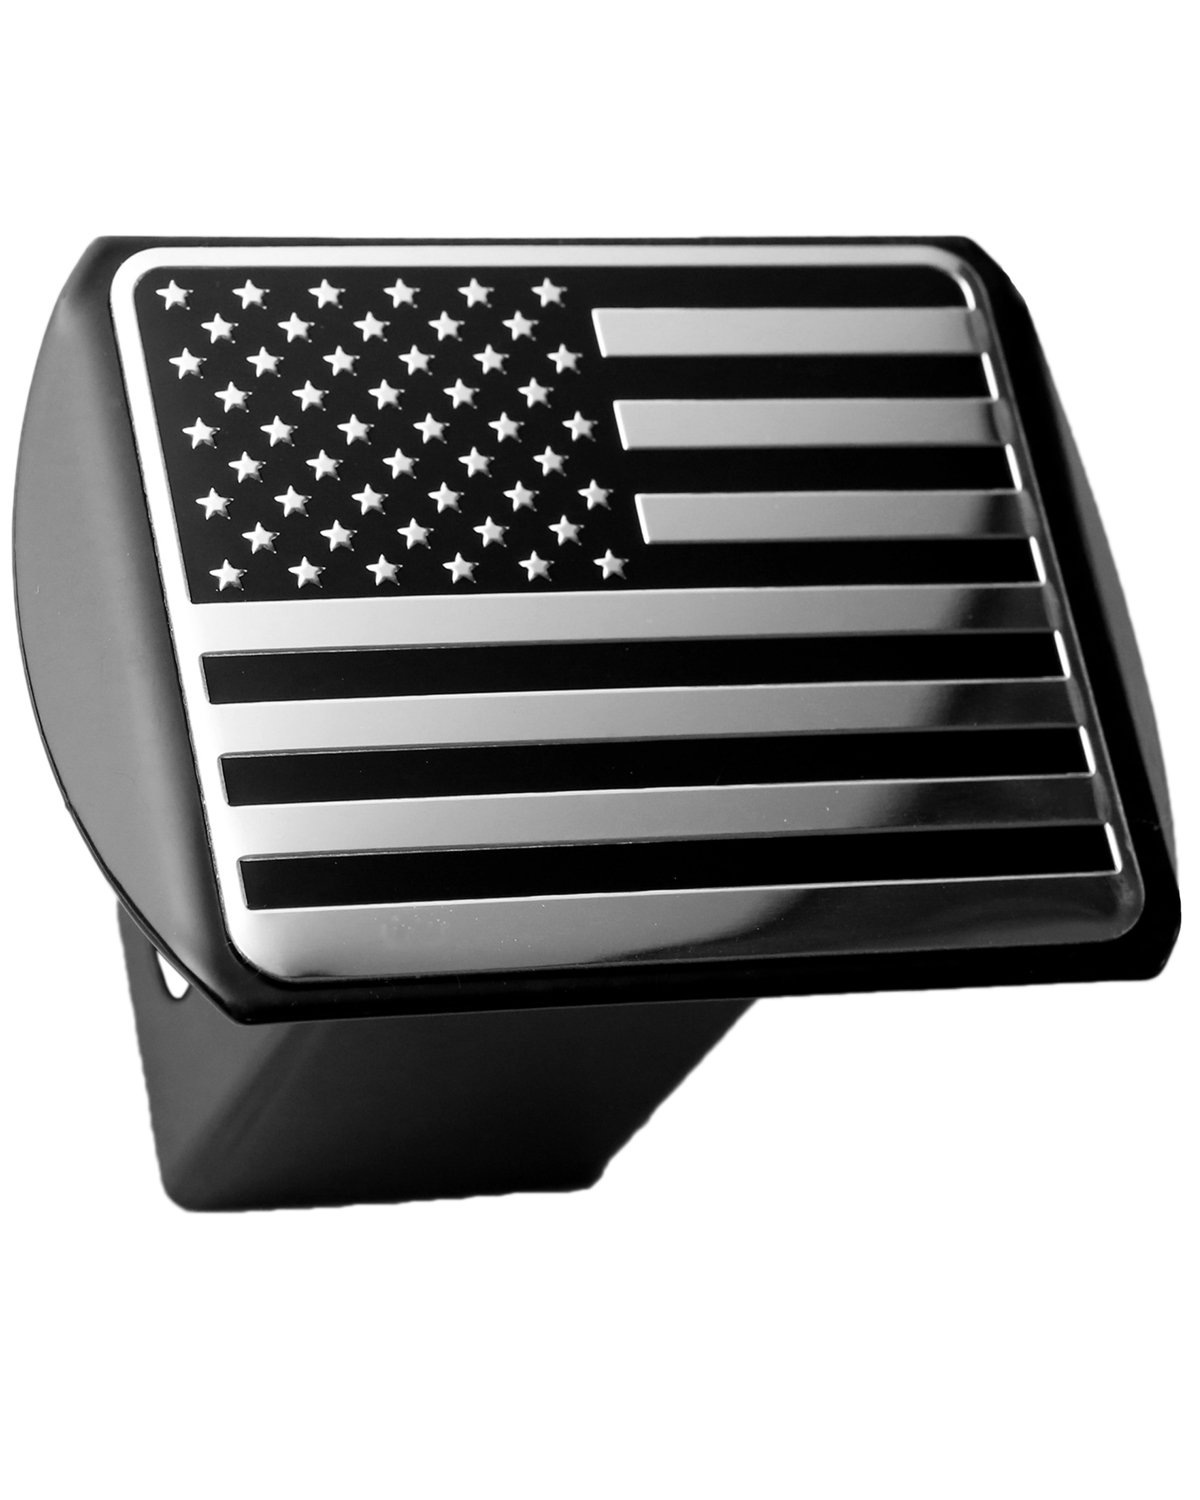 LFPartS USA US American Flag 3d Chrome Emblem on Black Trailer Metal Hitch Cover Fits 2'' Receivers by LFPartS